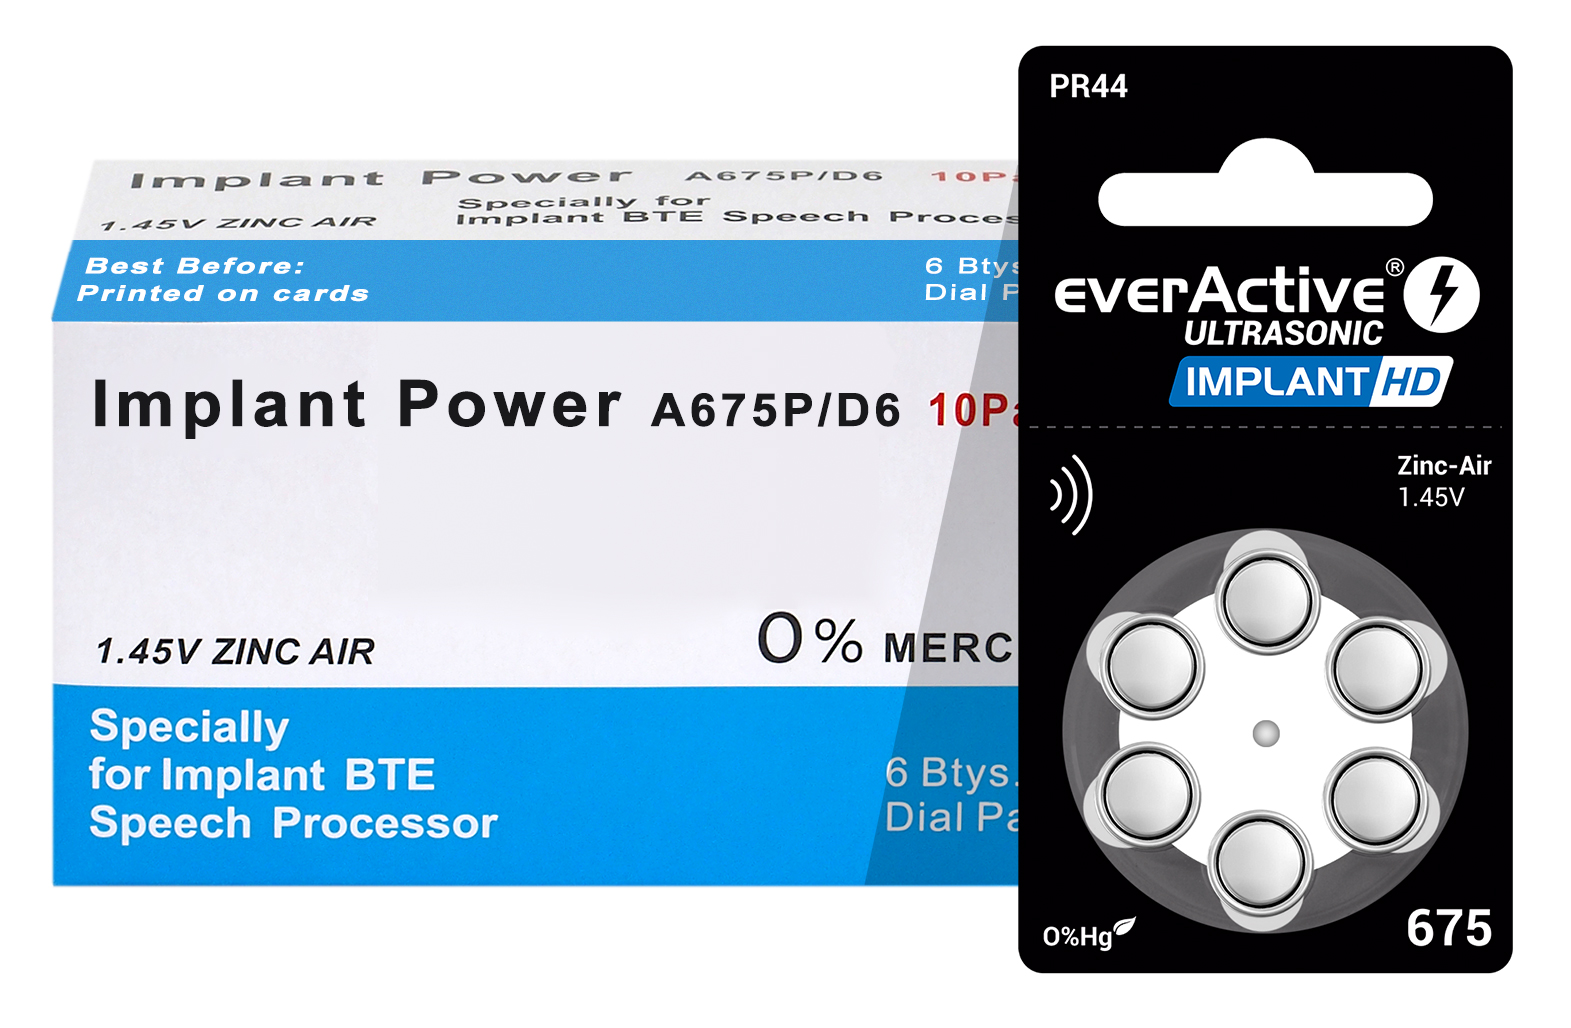 everActive zinc-air implant hd battery box